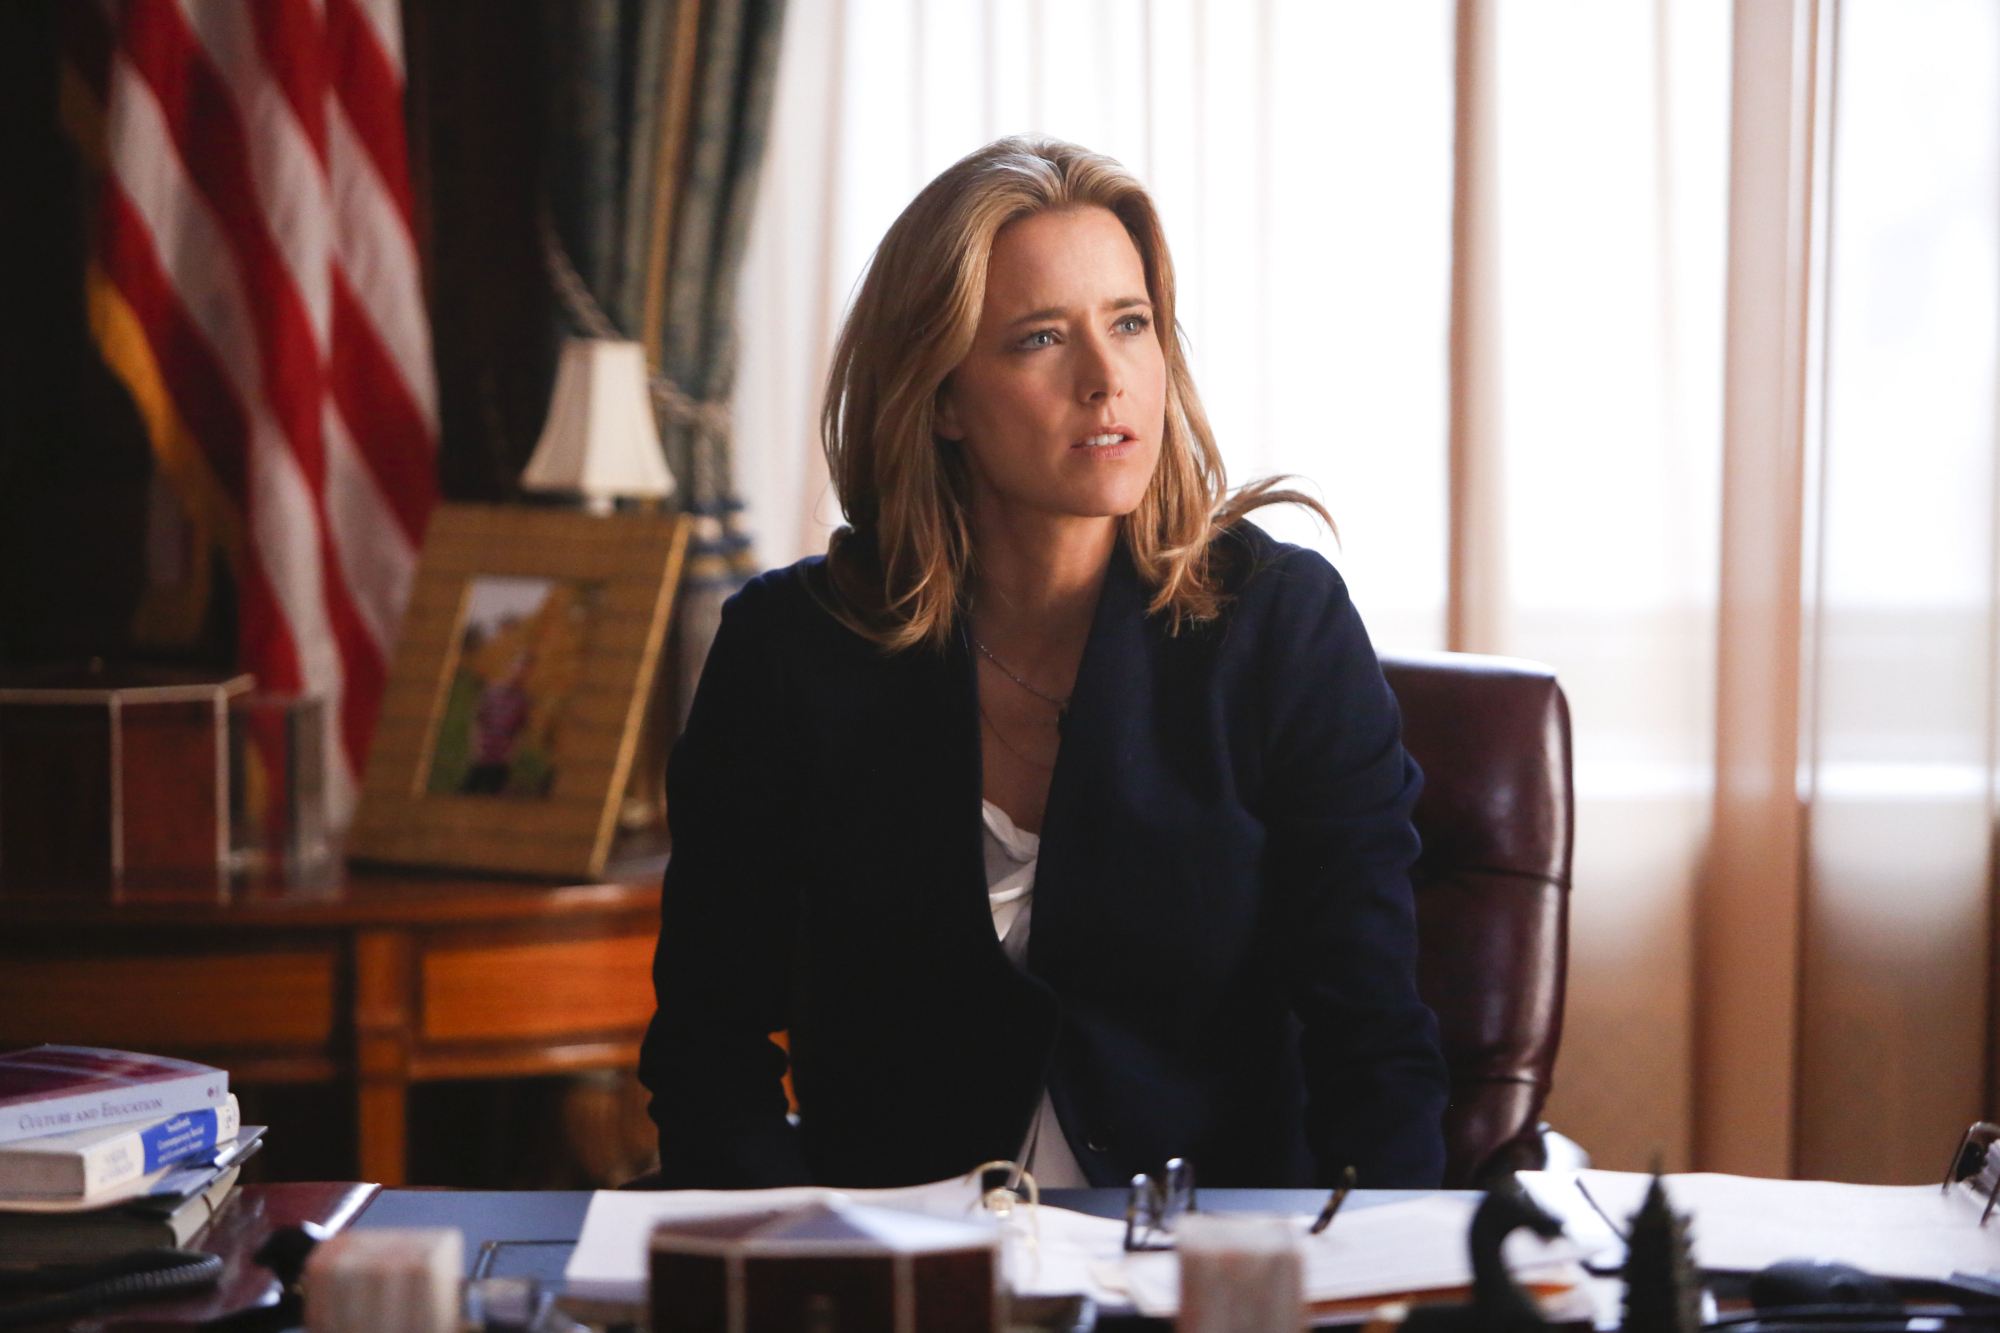 1. Téa Leoni studied anthropology and psychology in college at Sarah Lawrence.